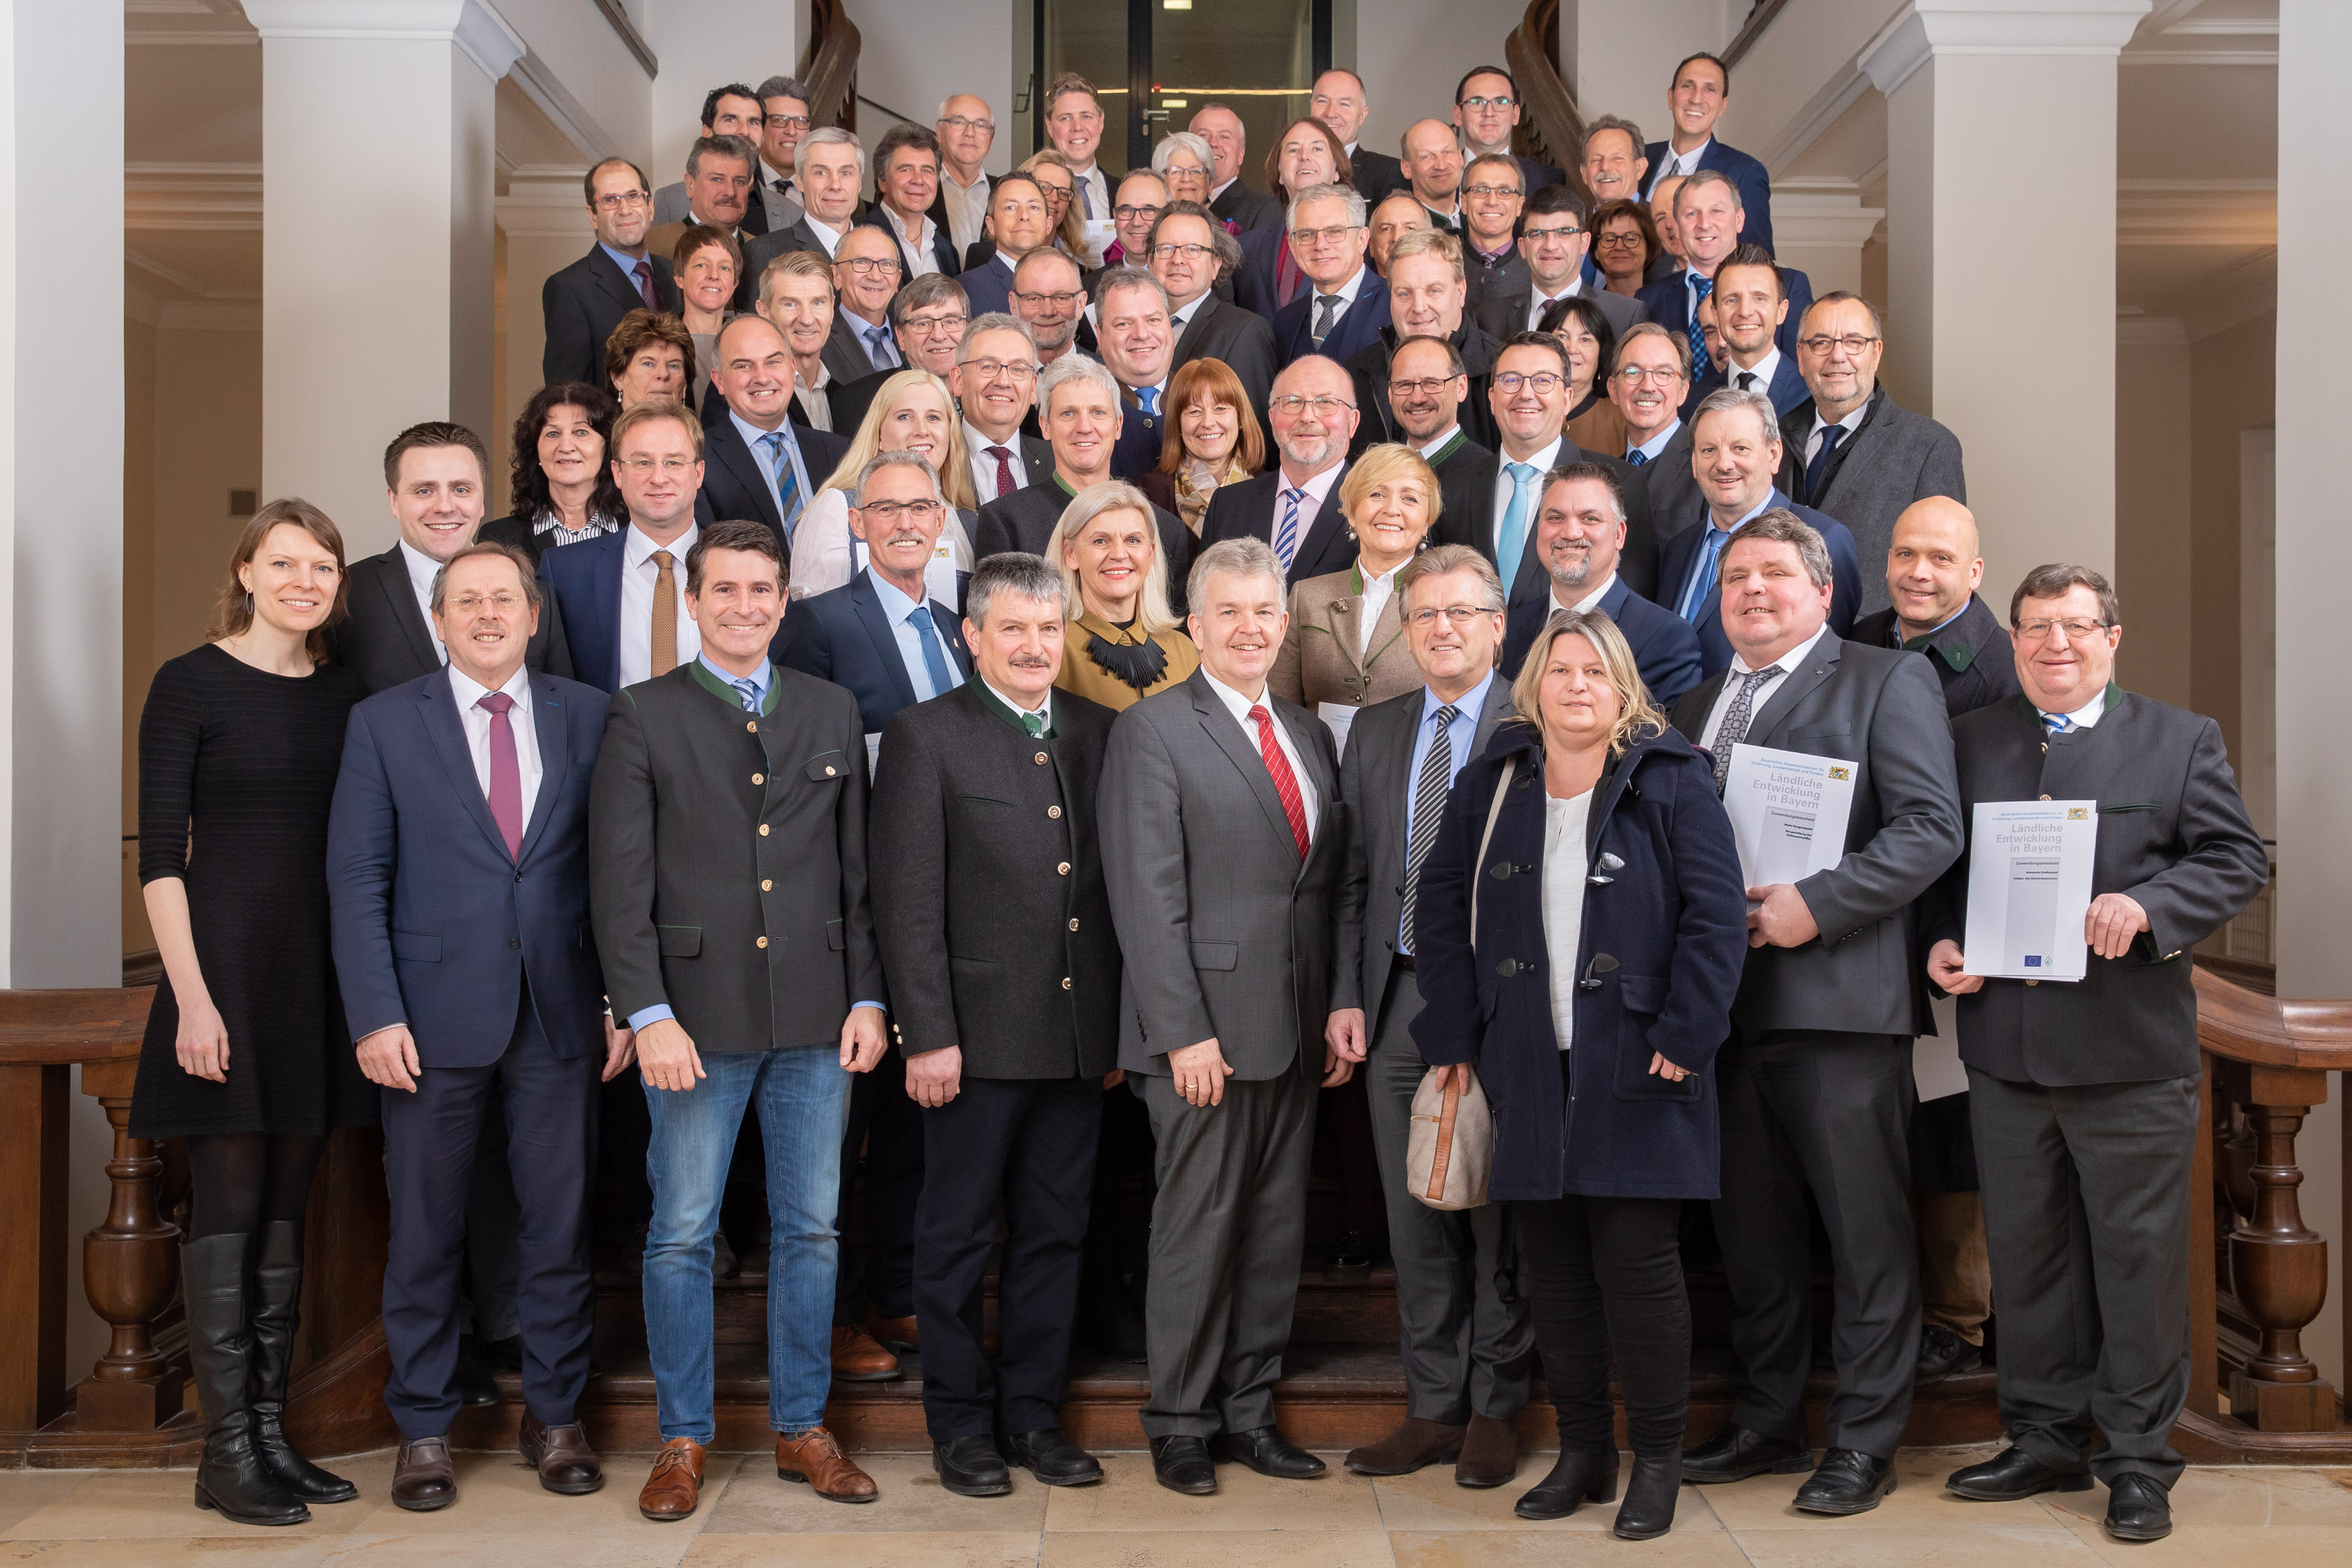 files/willanzheim/2019/verwaltung/gruppenfoto.jpg